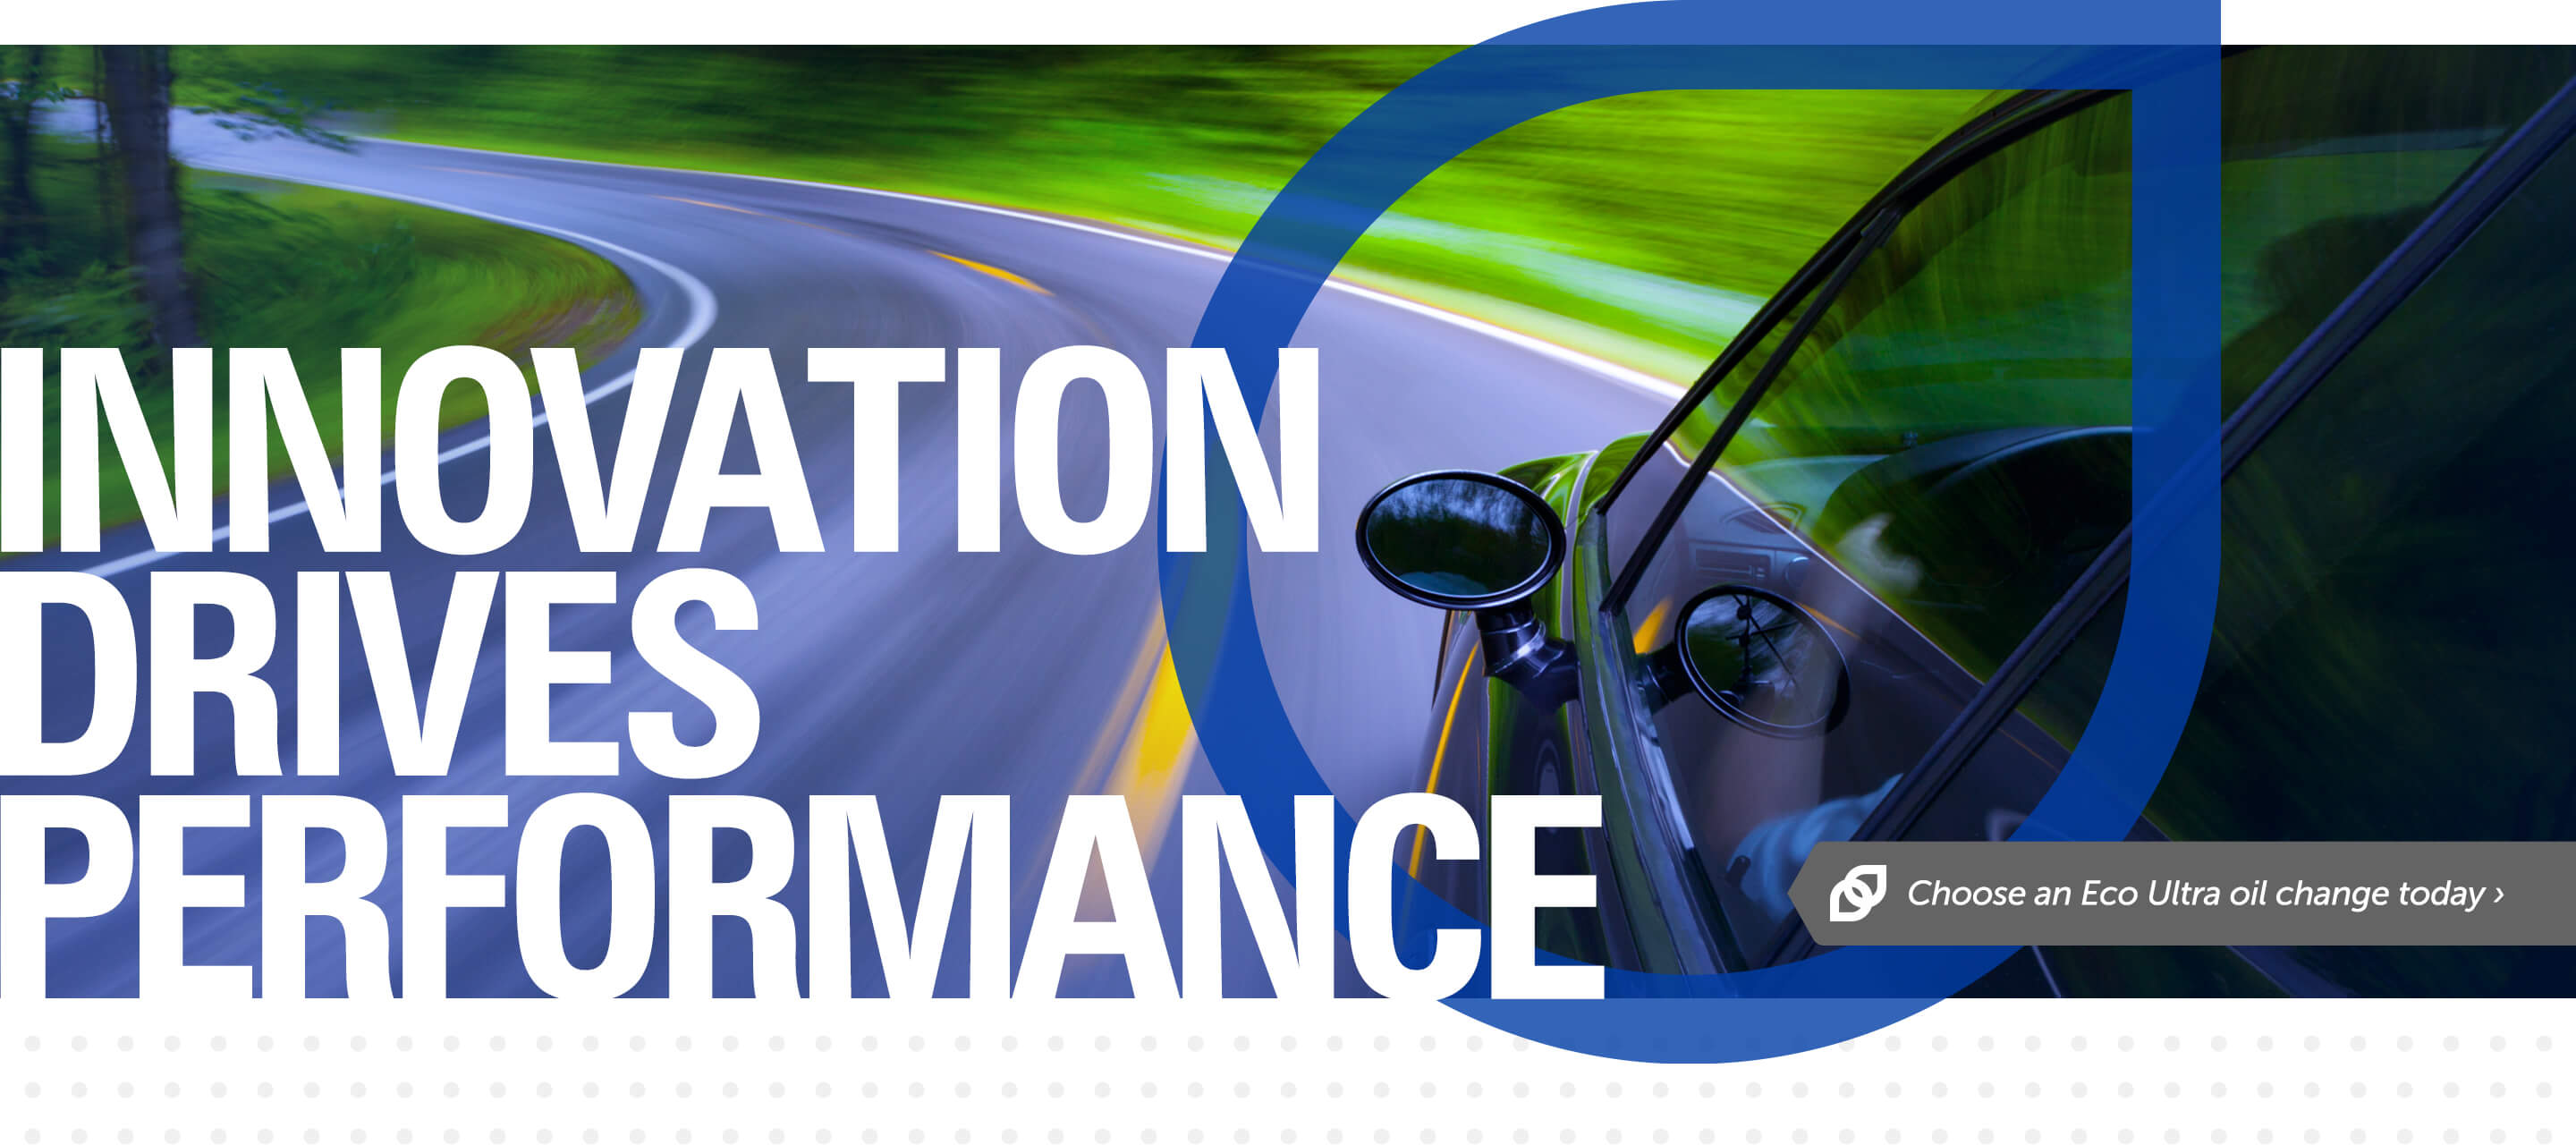 Innovation Drives Performance